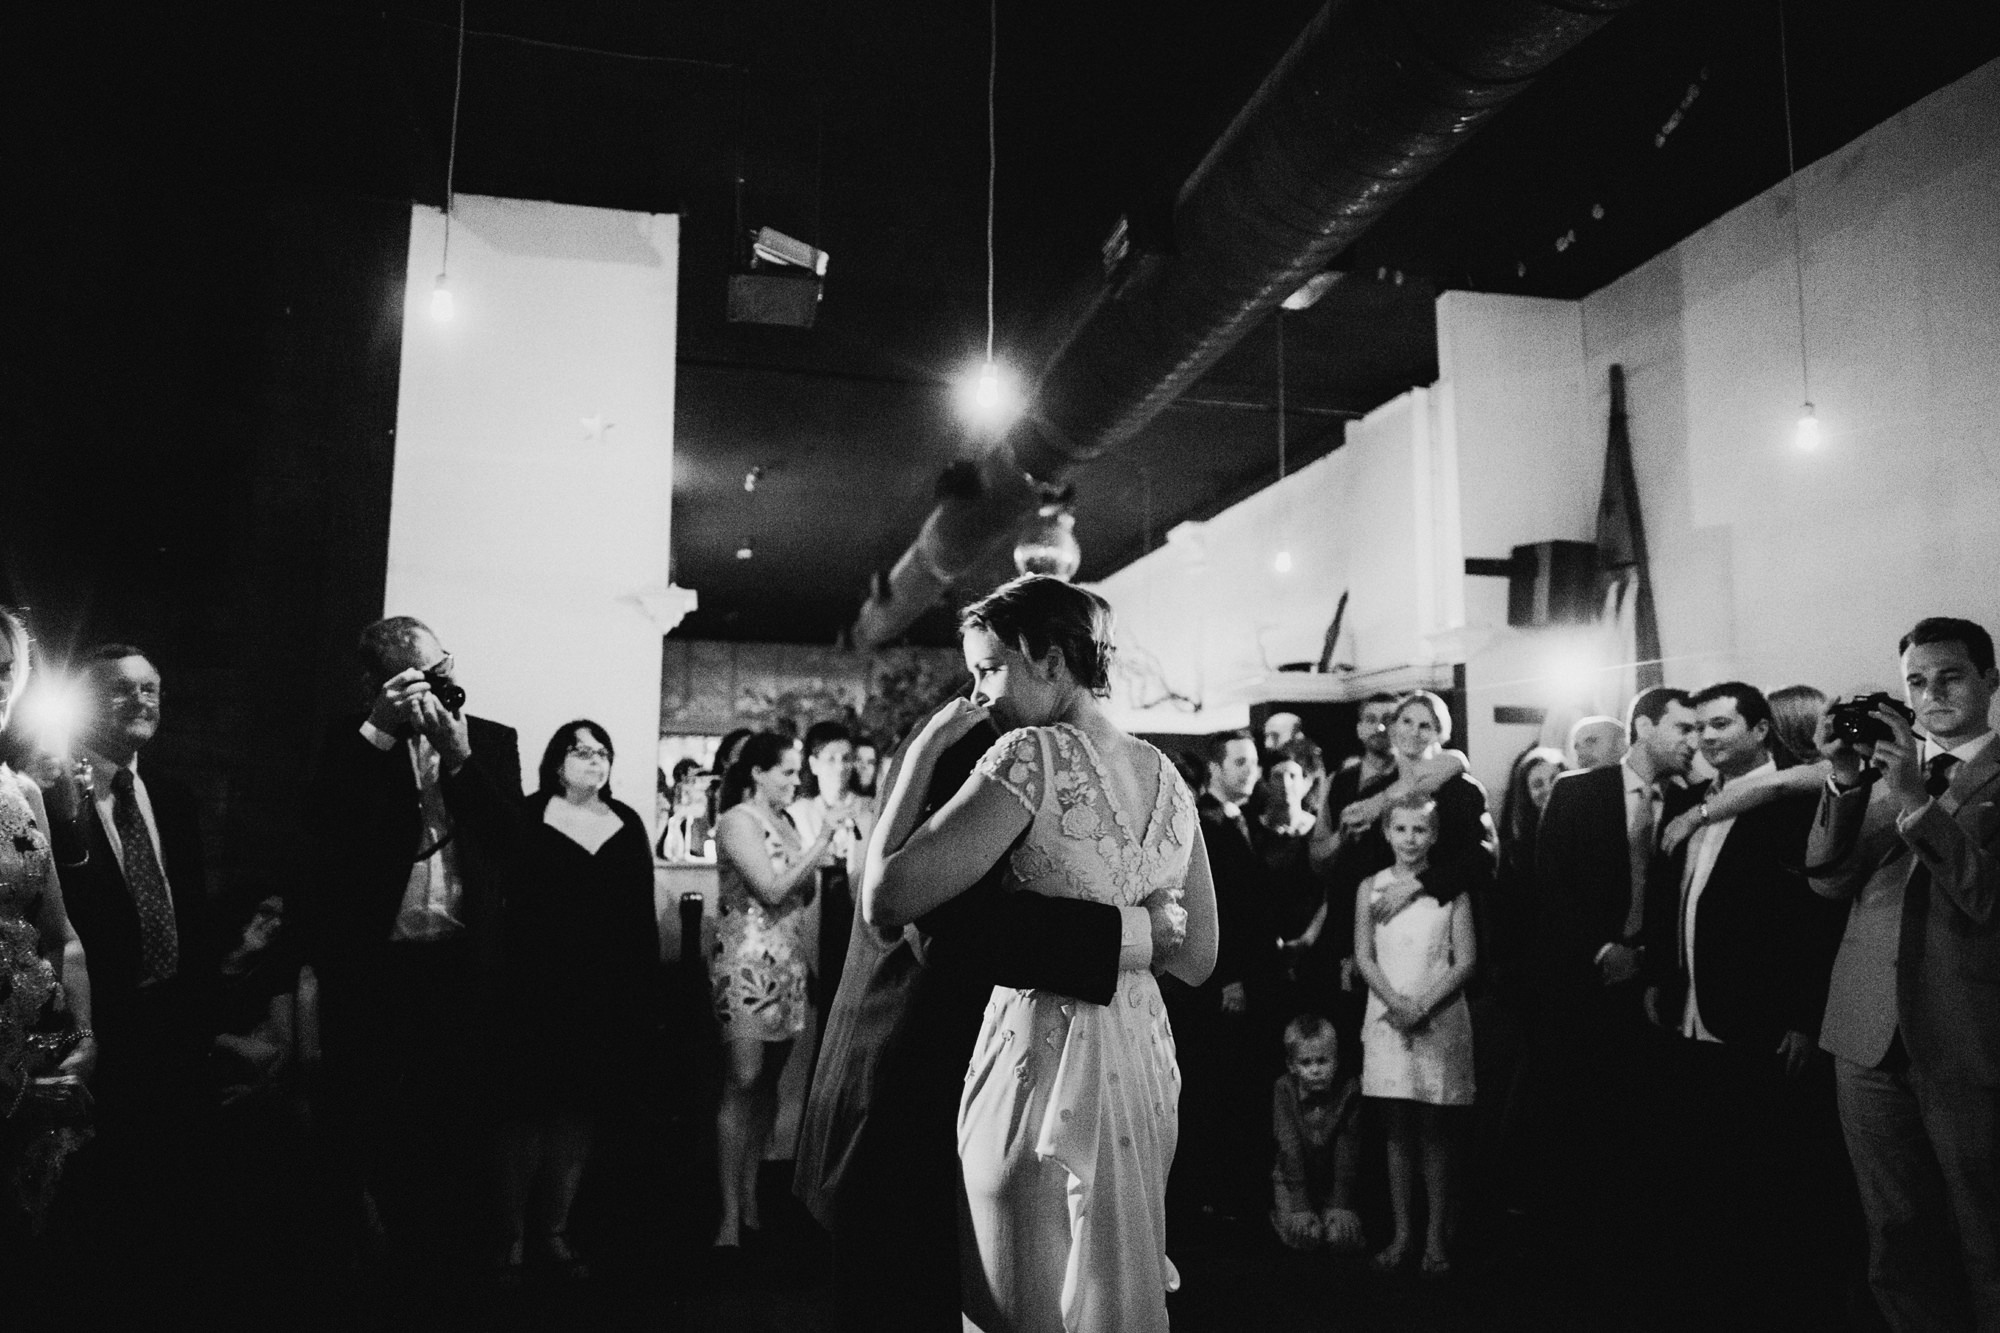 brooklyn_wedding_flatbushfarm_sammblake_054.jpg